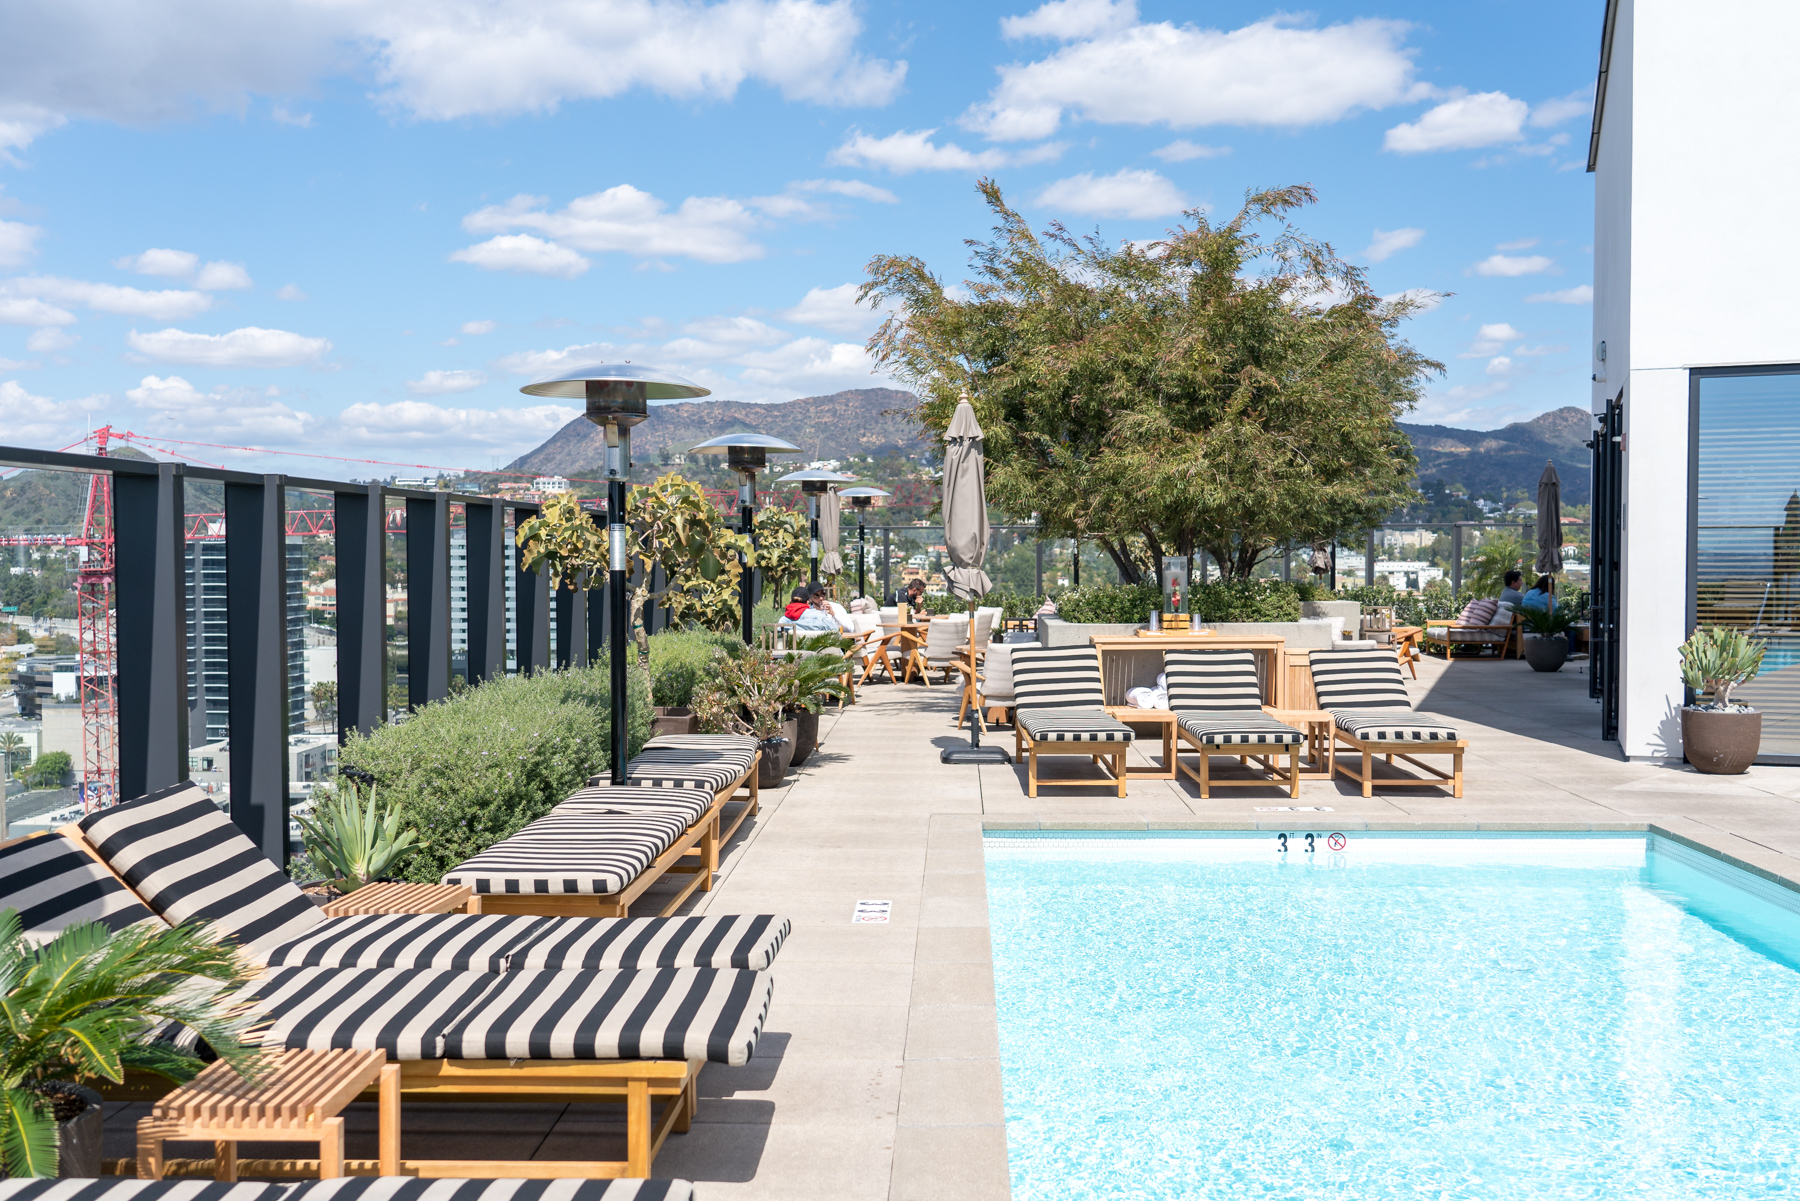 Pool with a View, Filifera, Hollywood, CA - Brunchographers